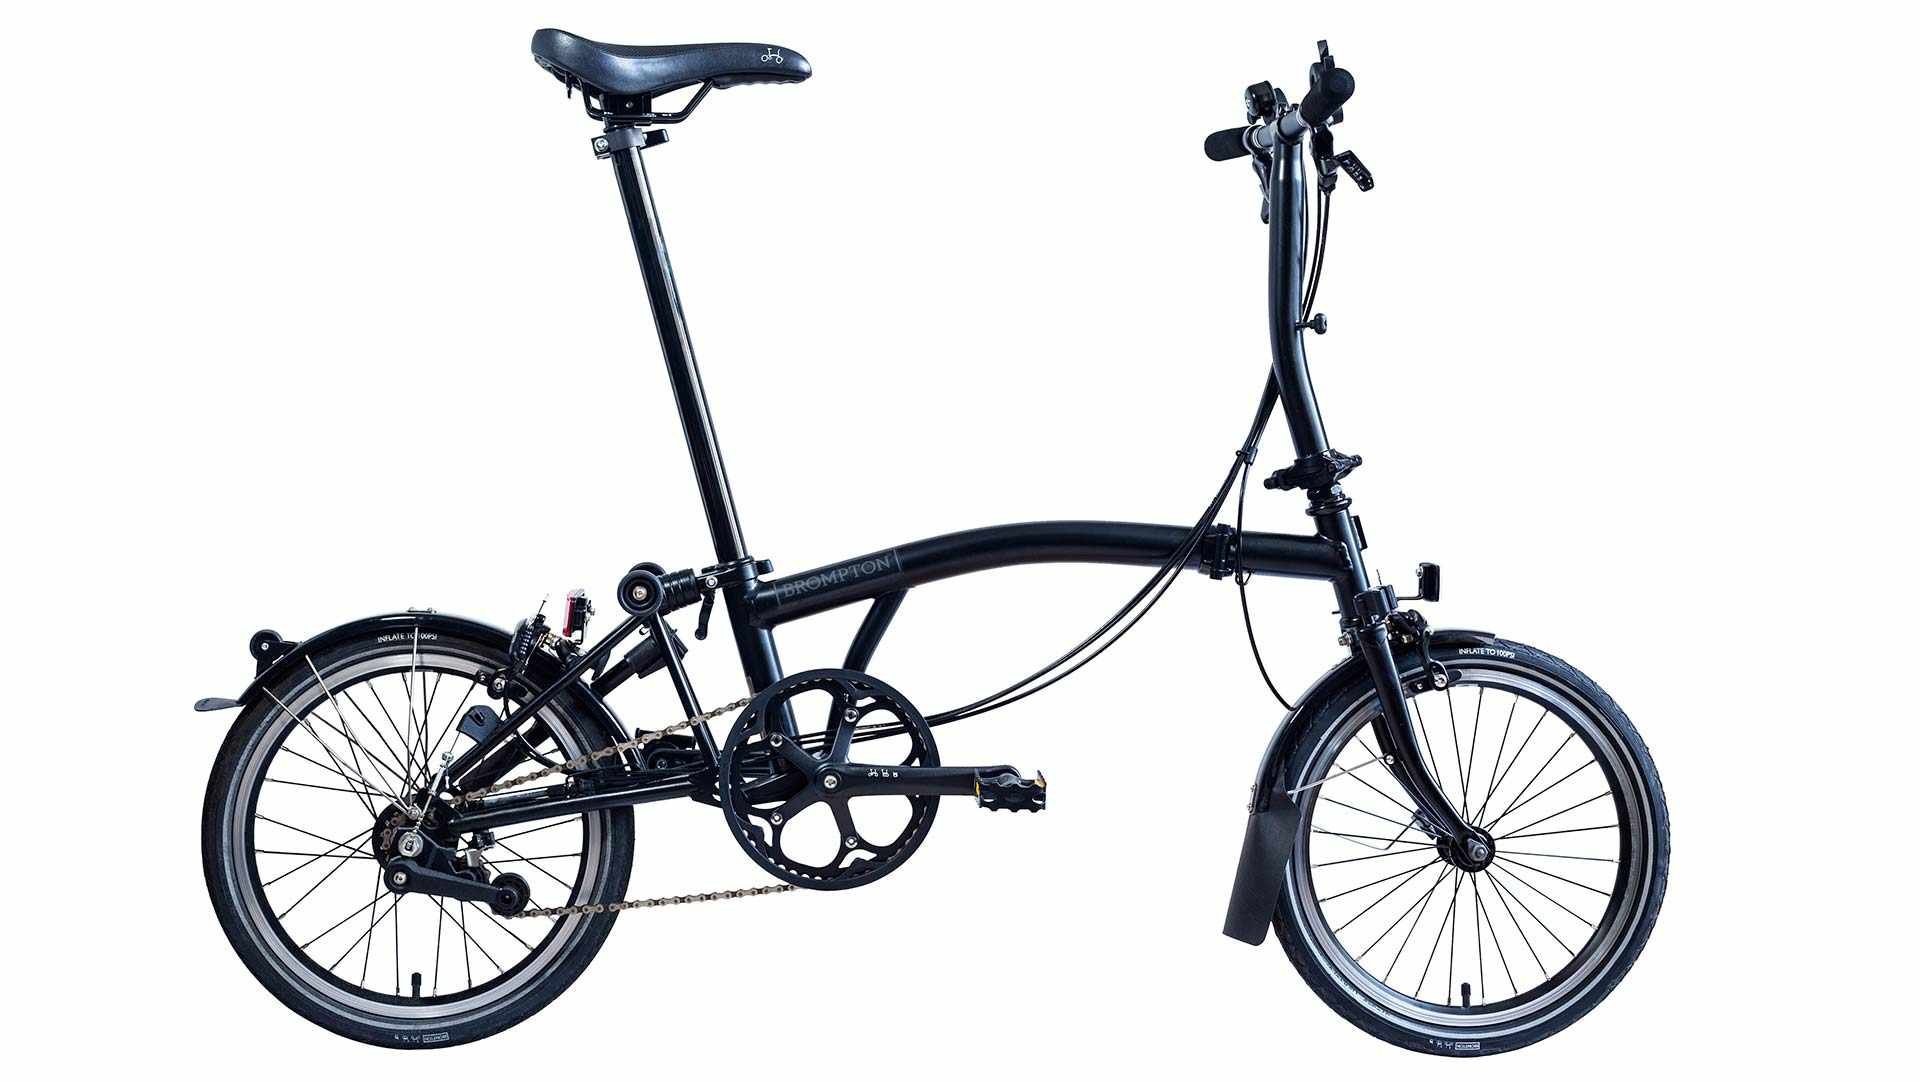 A Black Edition Brompton with a black mainframe – probably the stealthiest folding bike in existence